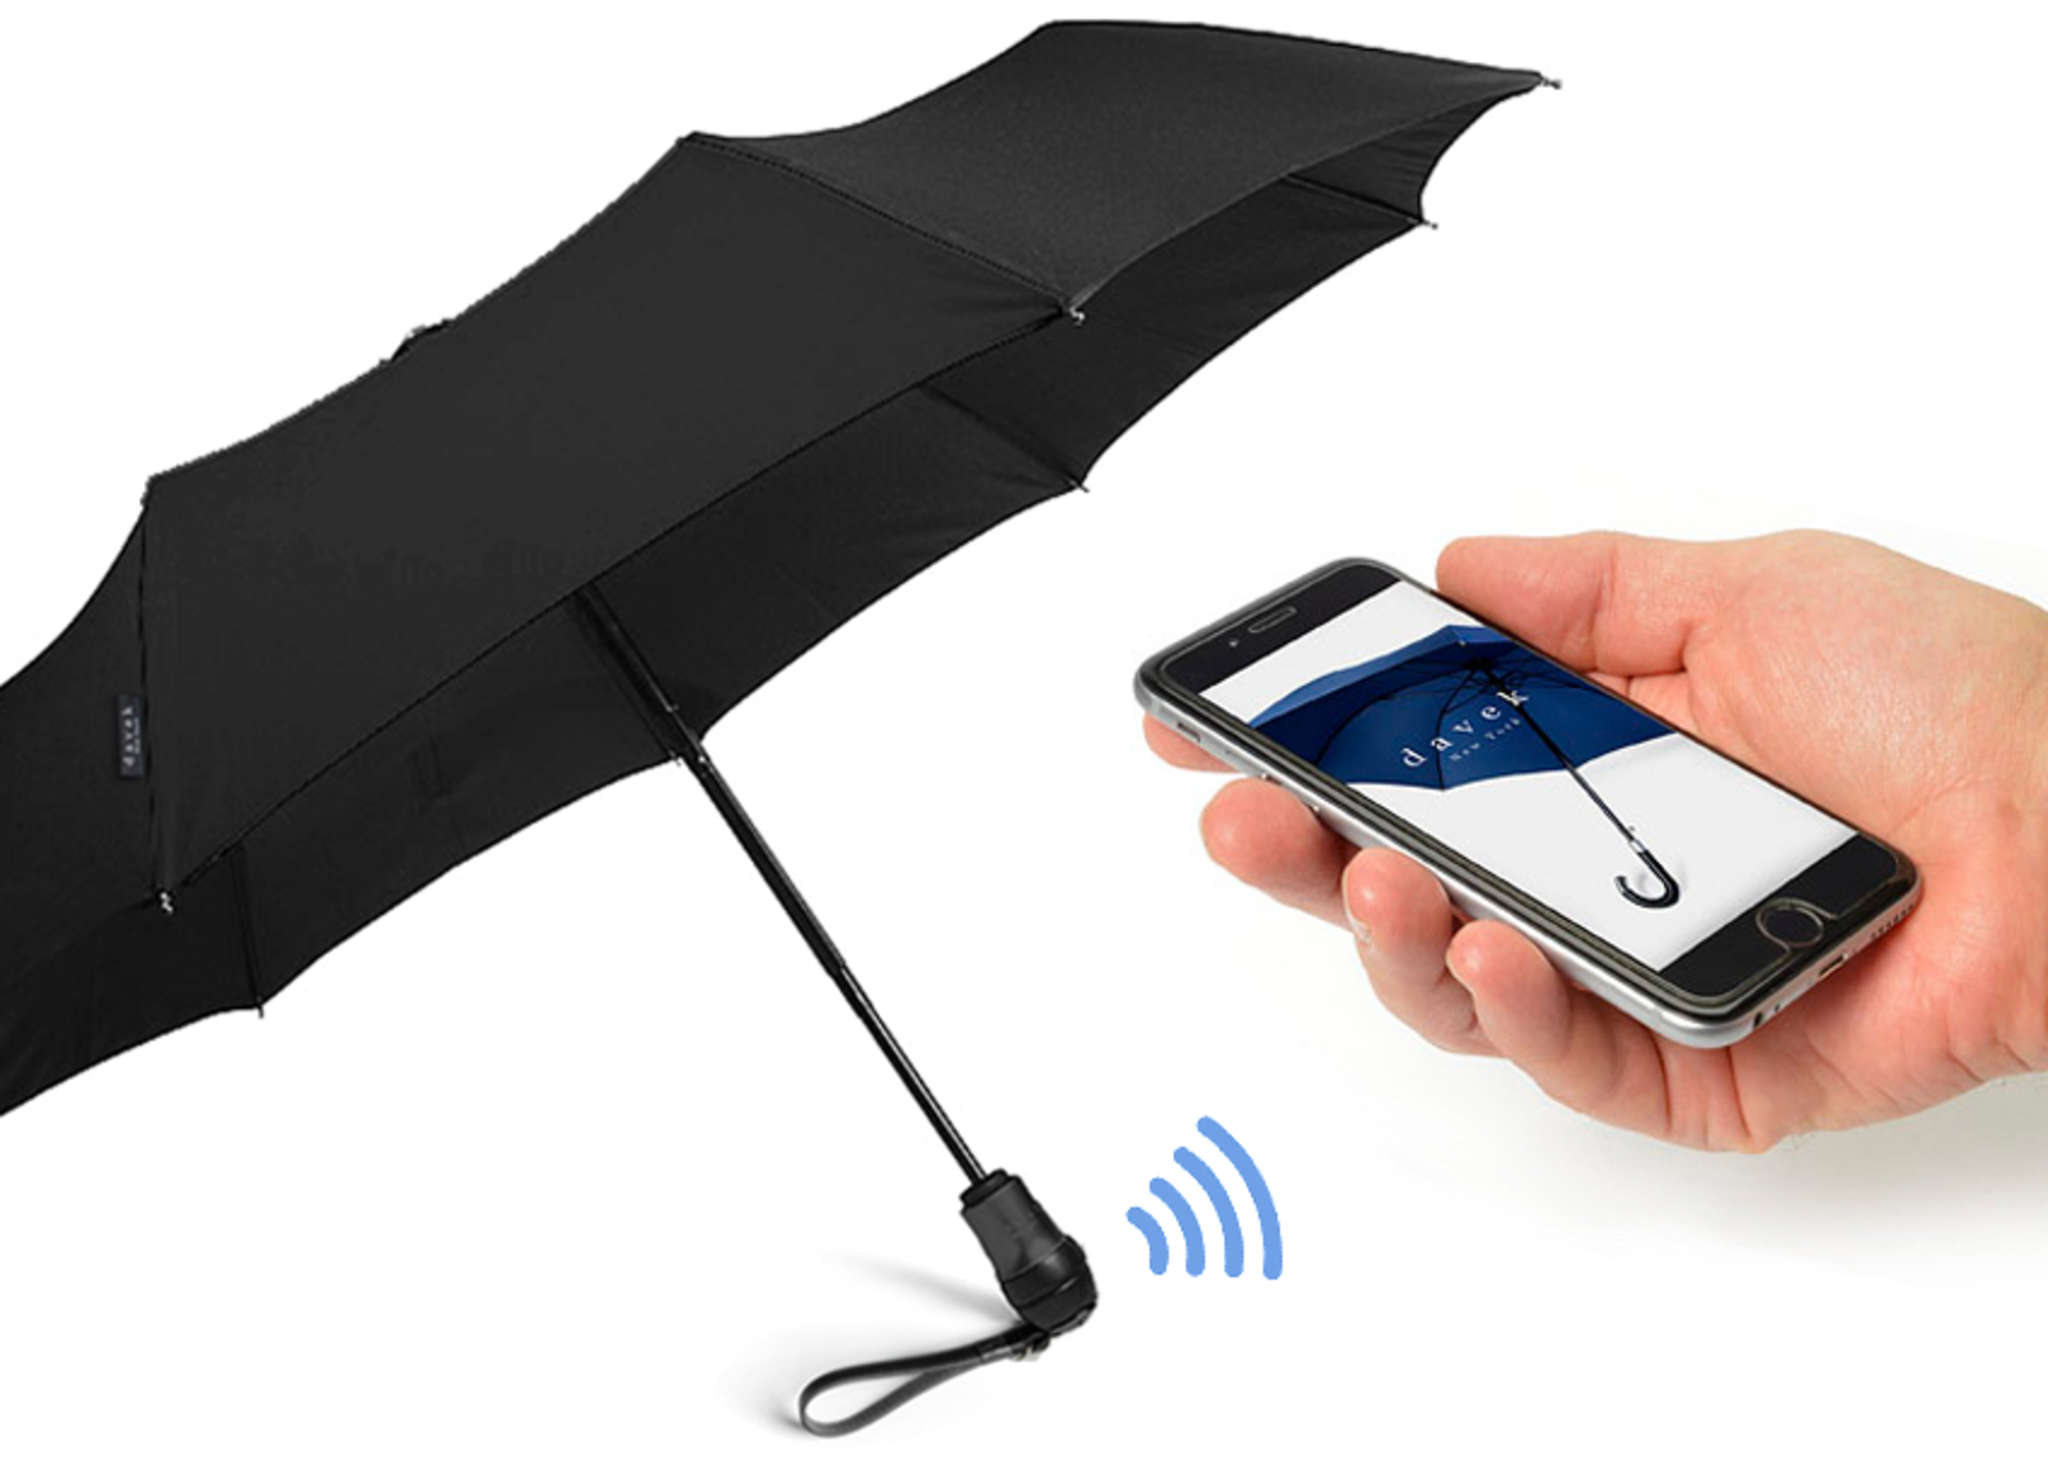 Davek Alert umbrella features a Bluetooth transmitter, synced with an app, ensuring the umbrella never gets lost.